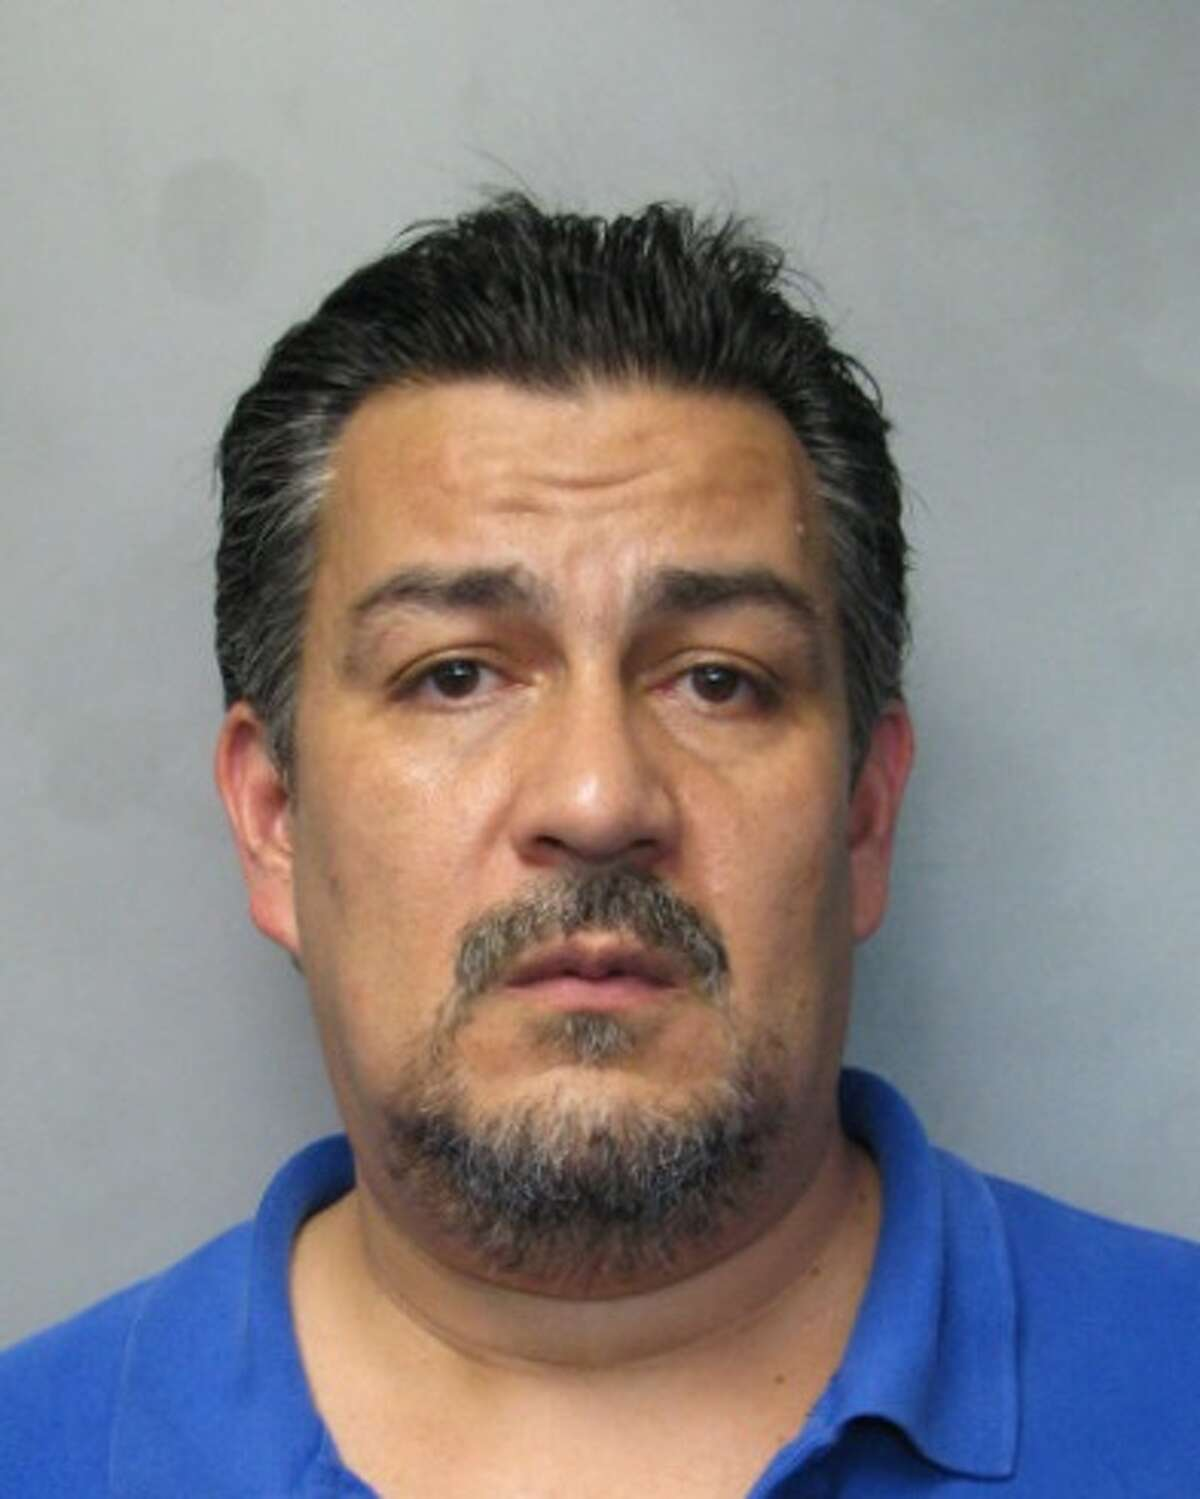 Jose Ricardo Iniguez, 44, was arrested Thursday, Sept 22, 2016, and charged with prostitution, a Class B misdemeanor, during an undercover sting operation in the 500 block of FM 1960 in north Harris County. (Harris County Precinct 4 Constable's Office)